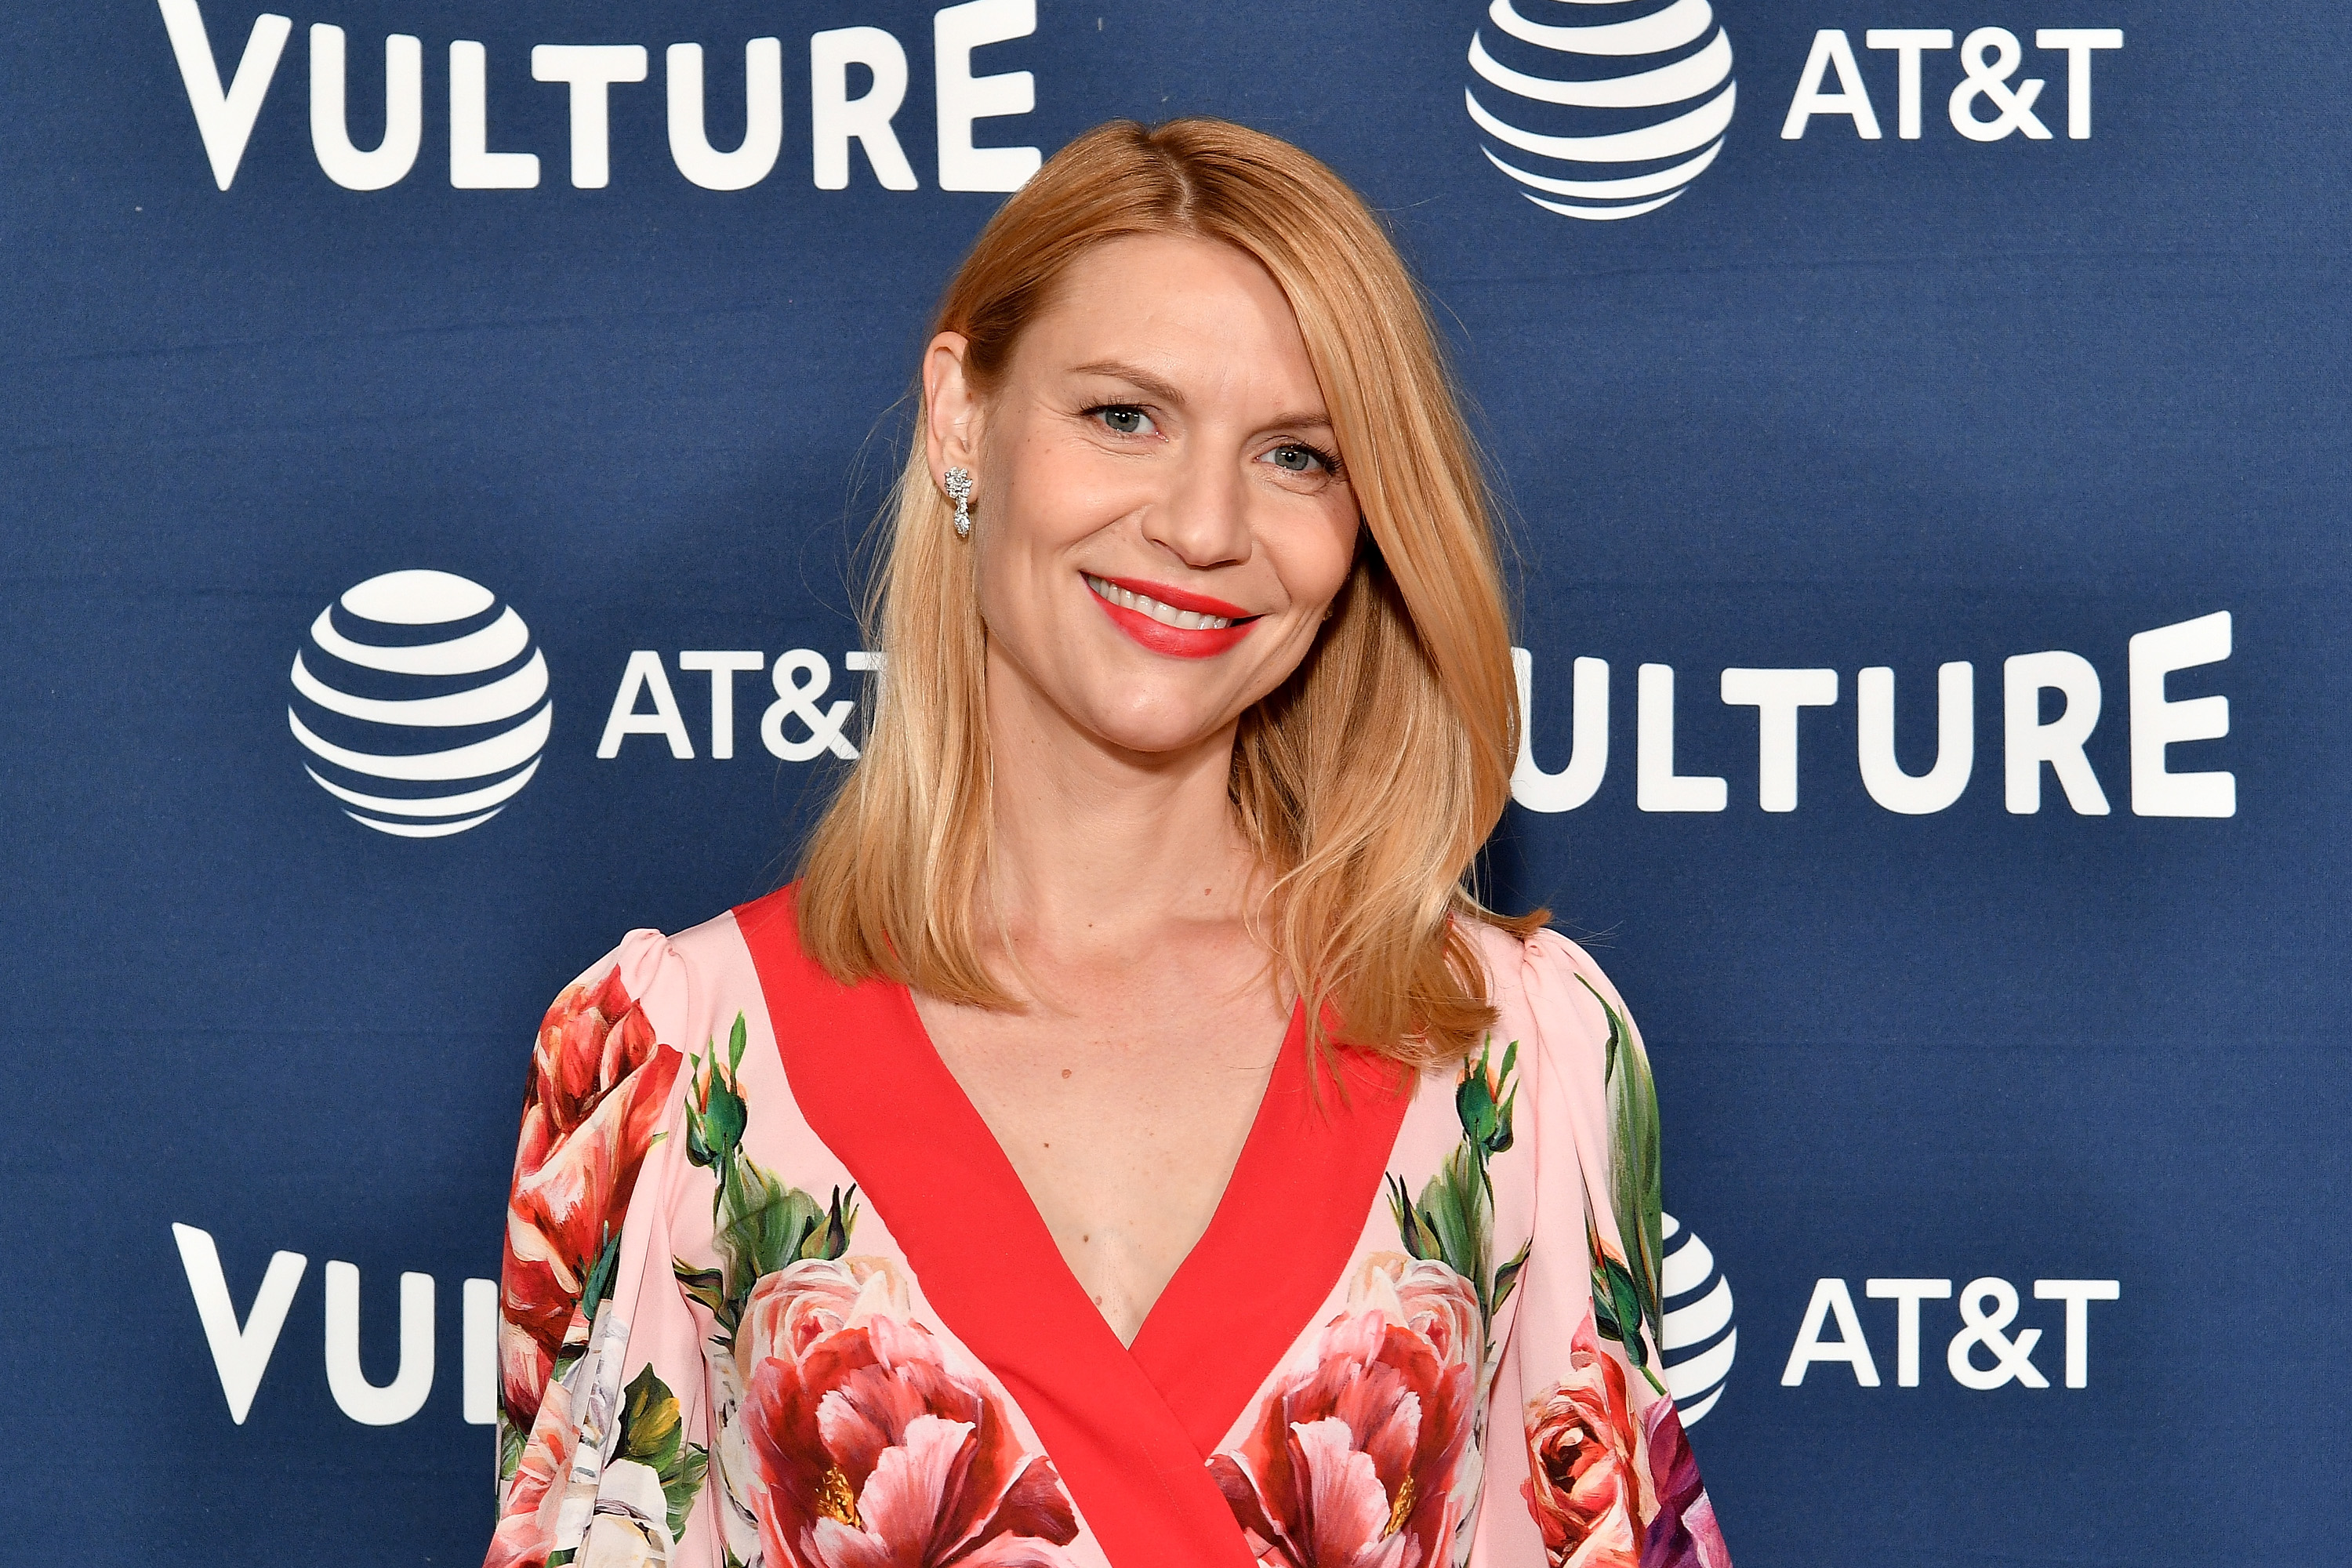 Actor Claire Danes attends Day Two of the Vulture Festival Presented By AT&T at Milk Studios on May 20, 2018 in New York City.